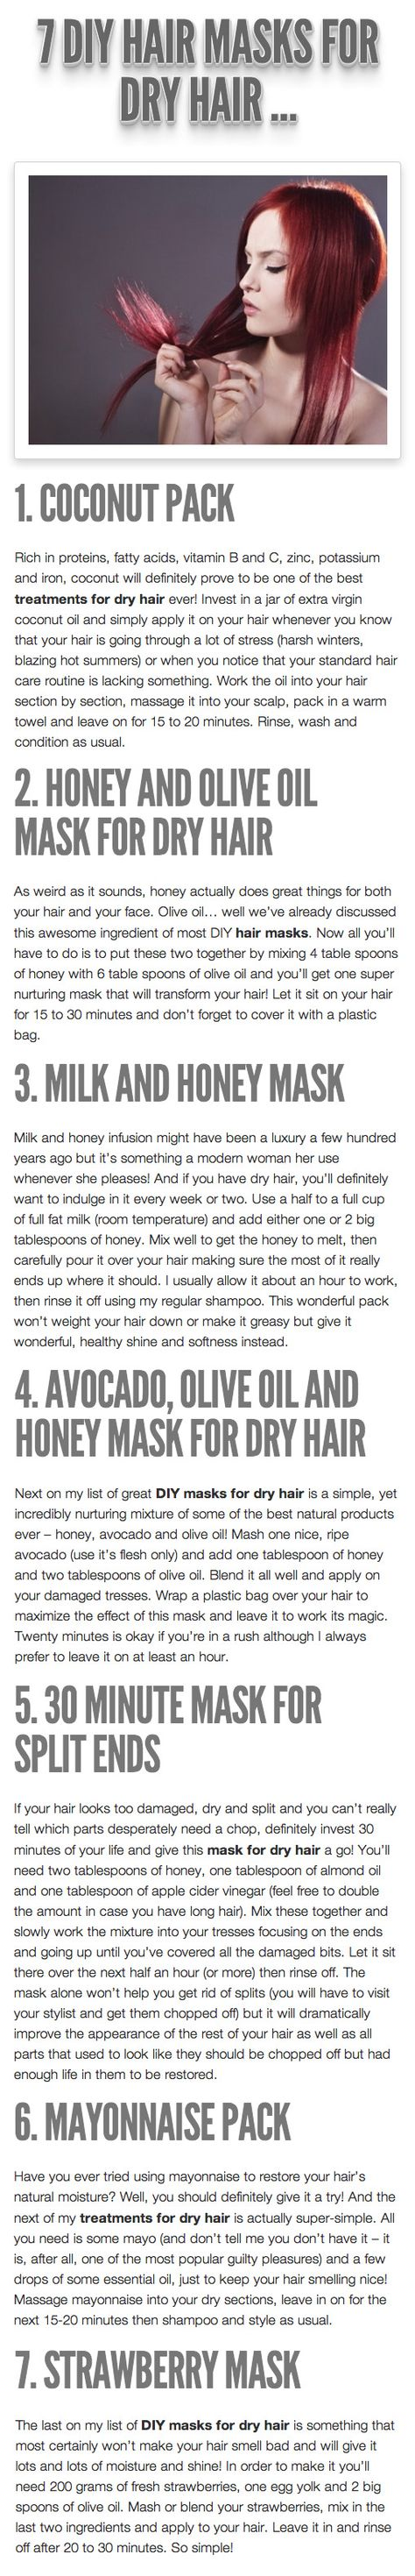 PRODUCTS | HAIR MASQUES :: 7 DIY Hair